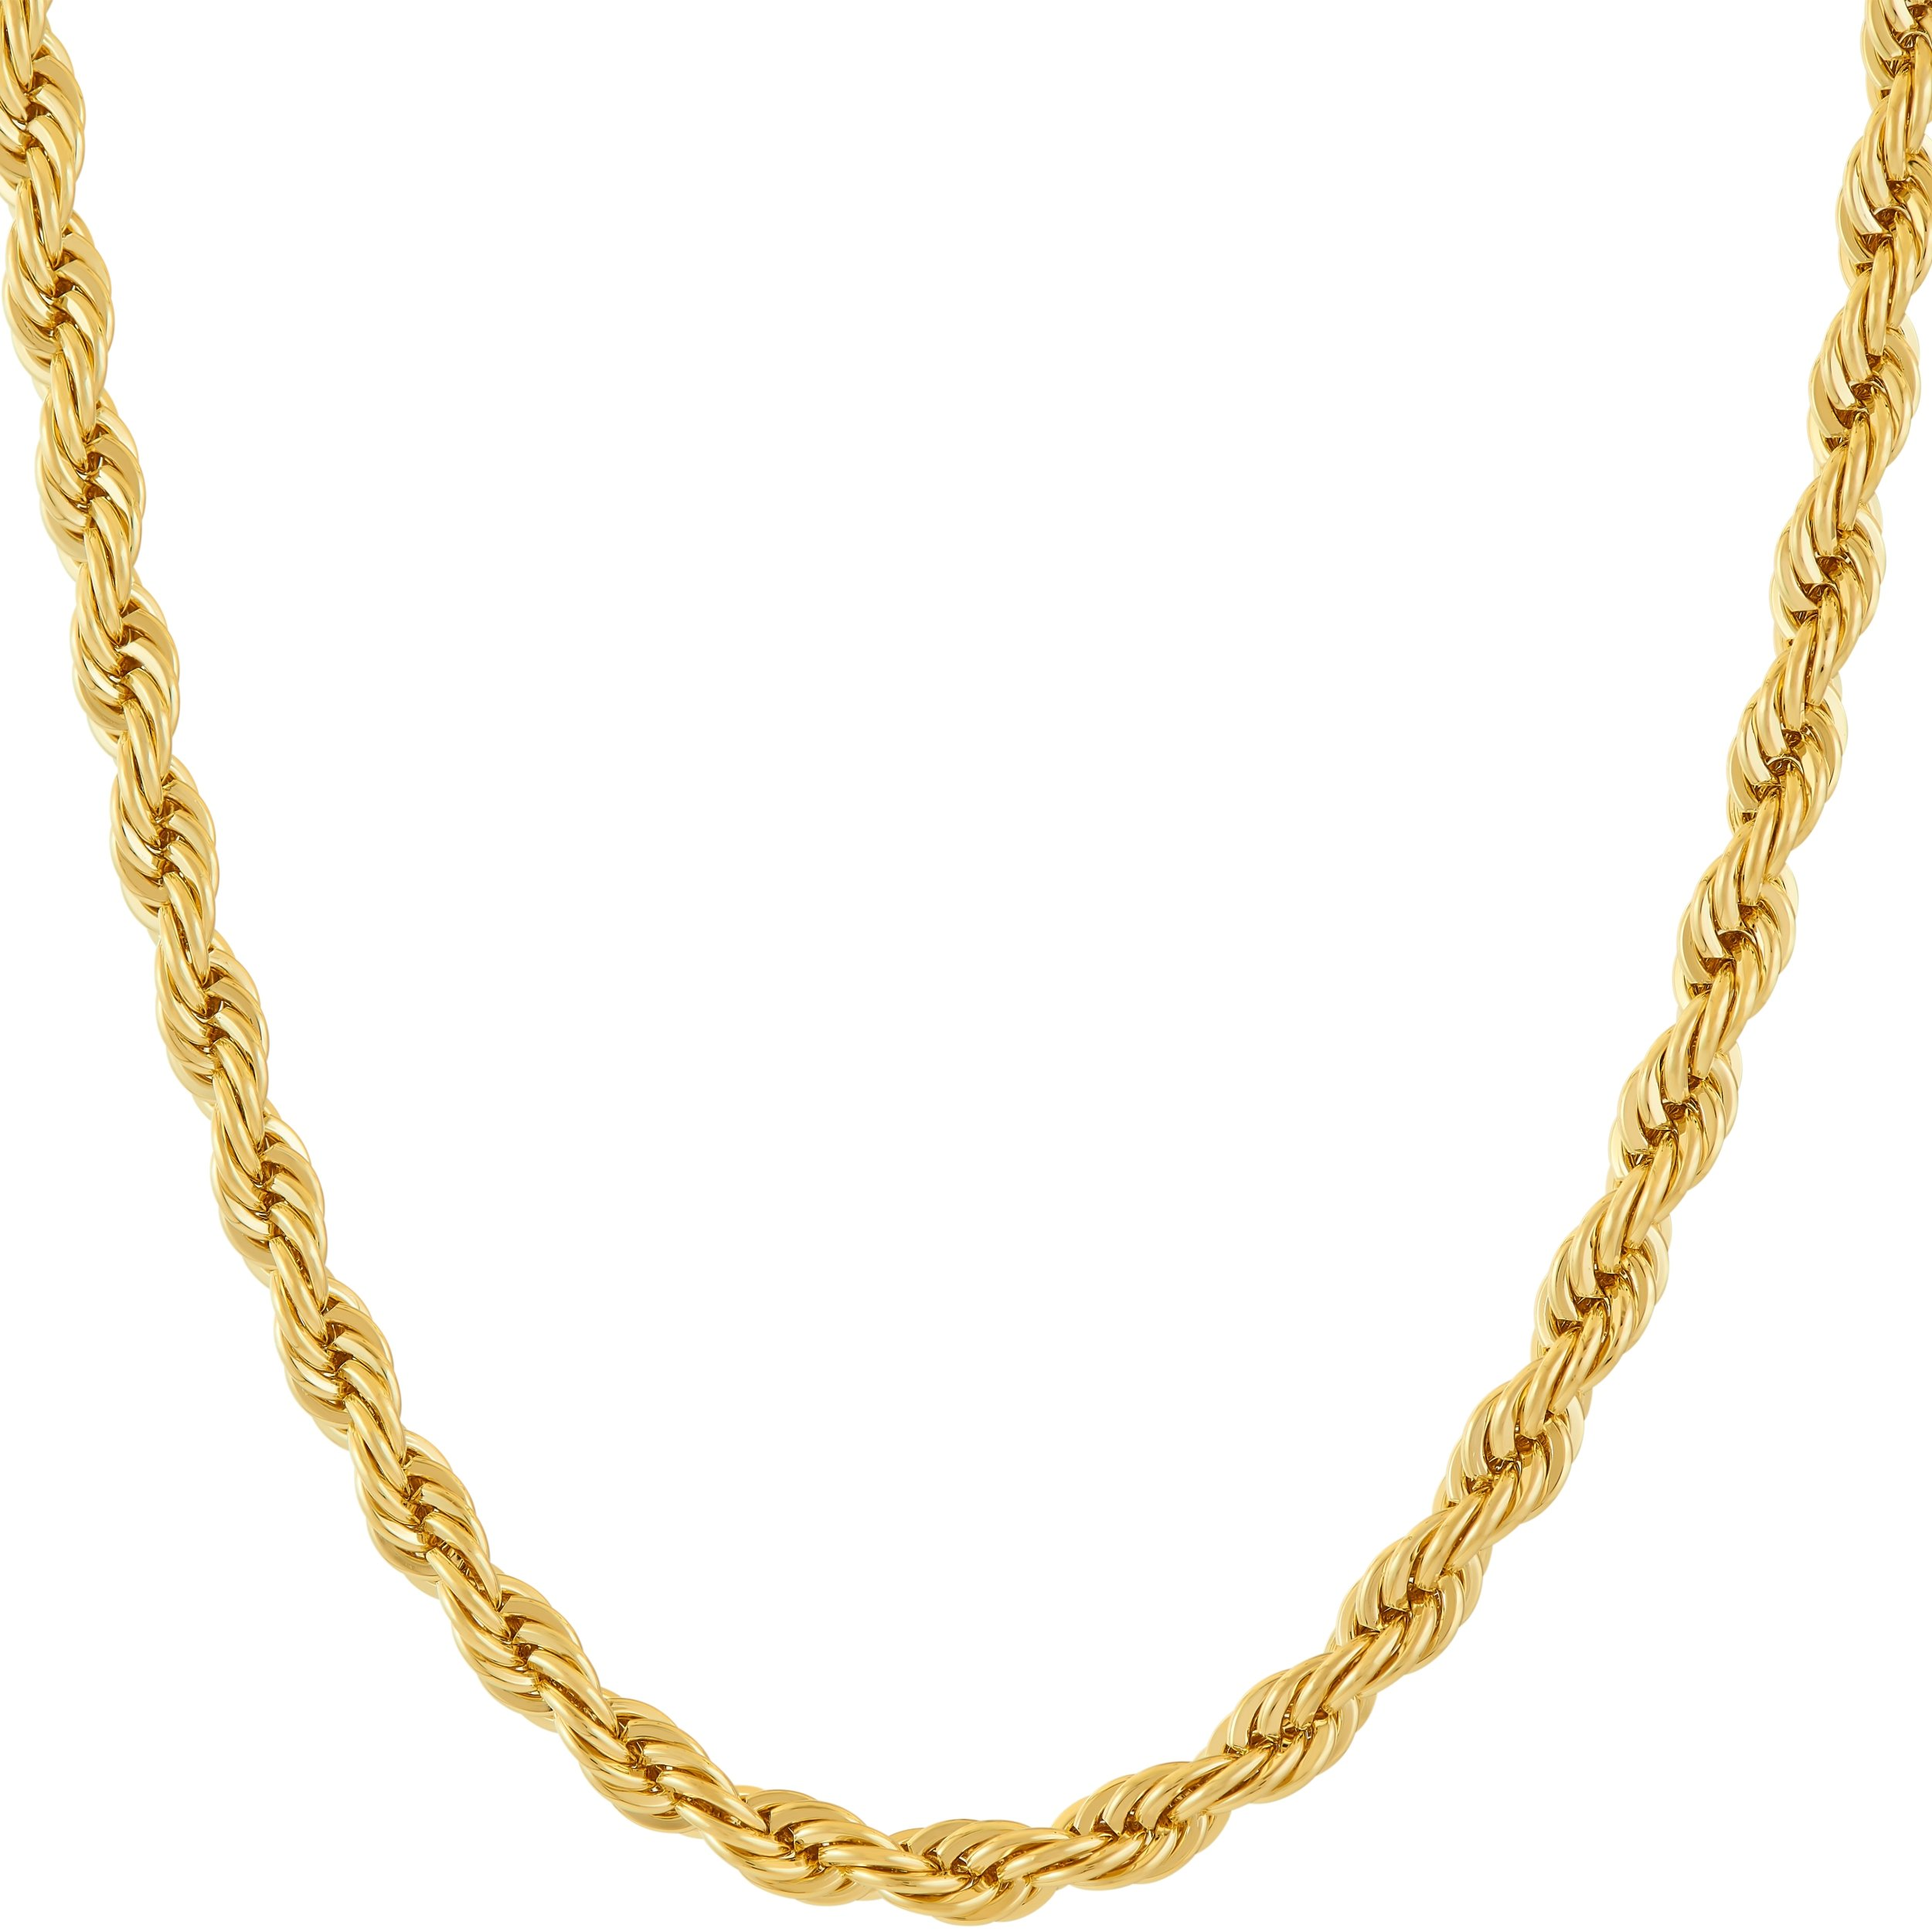 freya necklace product gold jewelry buddha lupo edit timeless